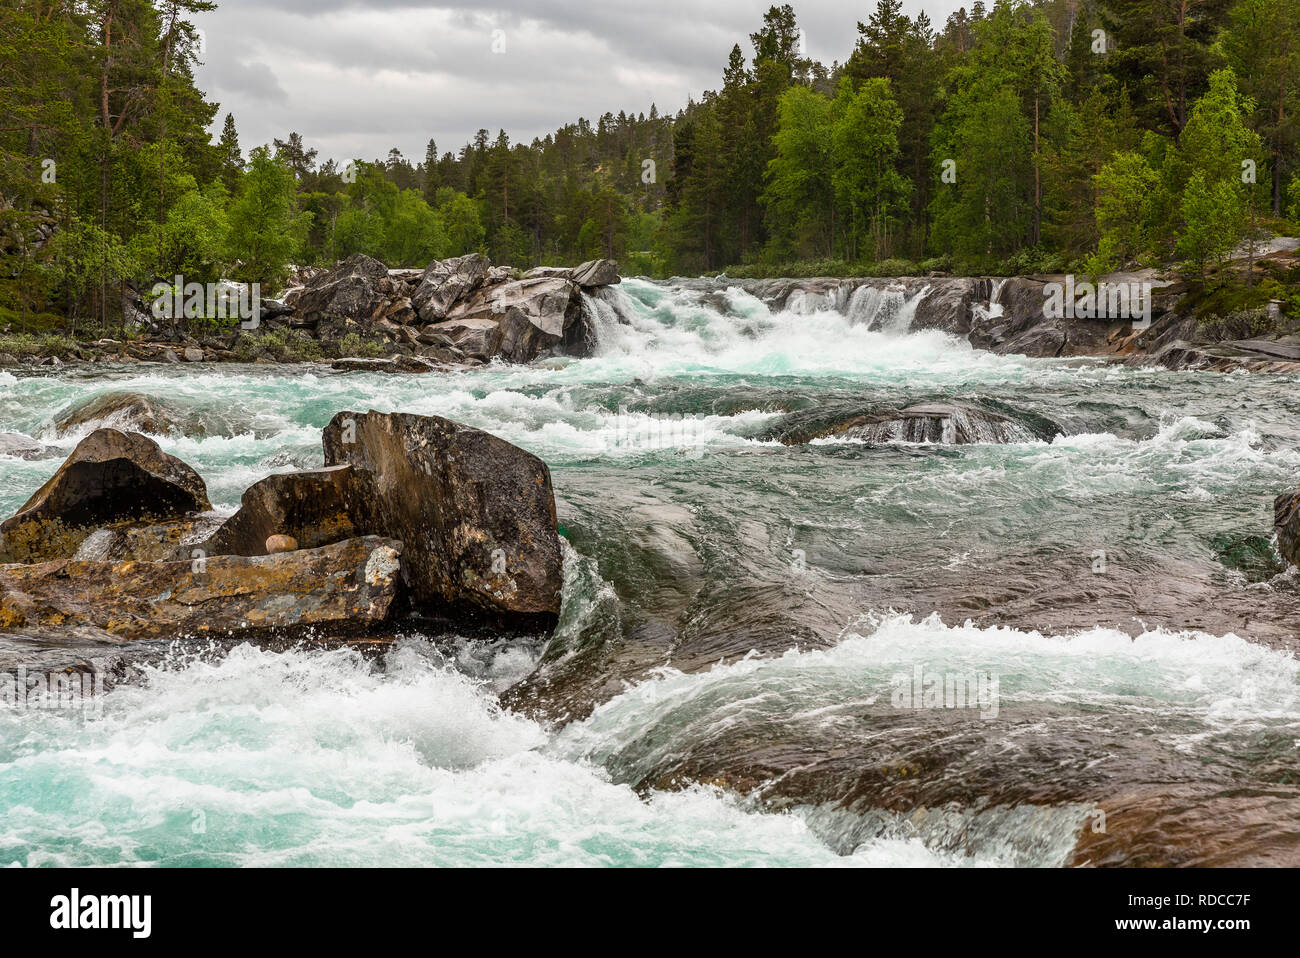 A turbulent river among boulders in a valley overgrown with birches and spruces under a stormy sky. Norway, Saltfjellet. - Stock Image